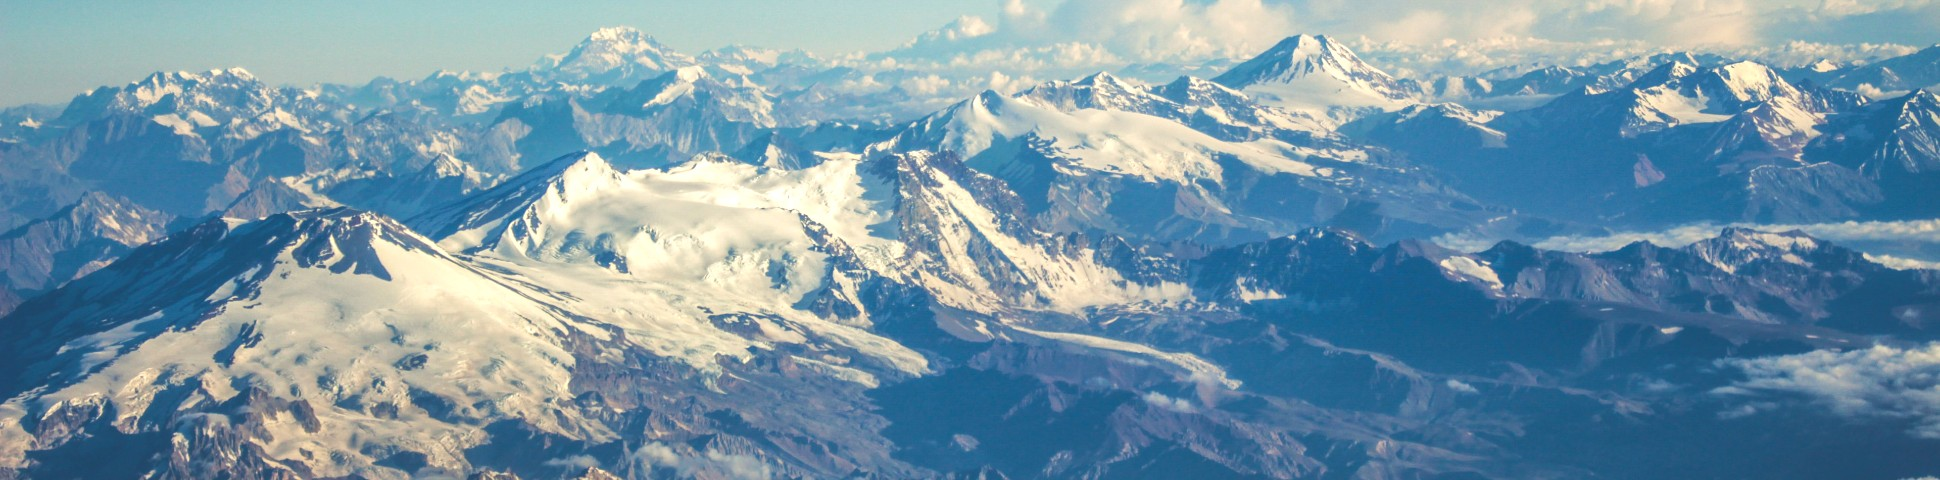 Panoramic view of Chilean Andes